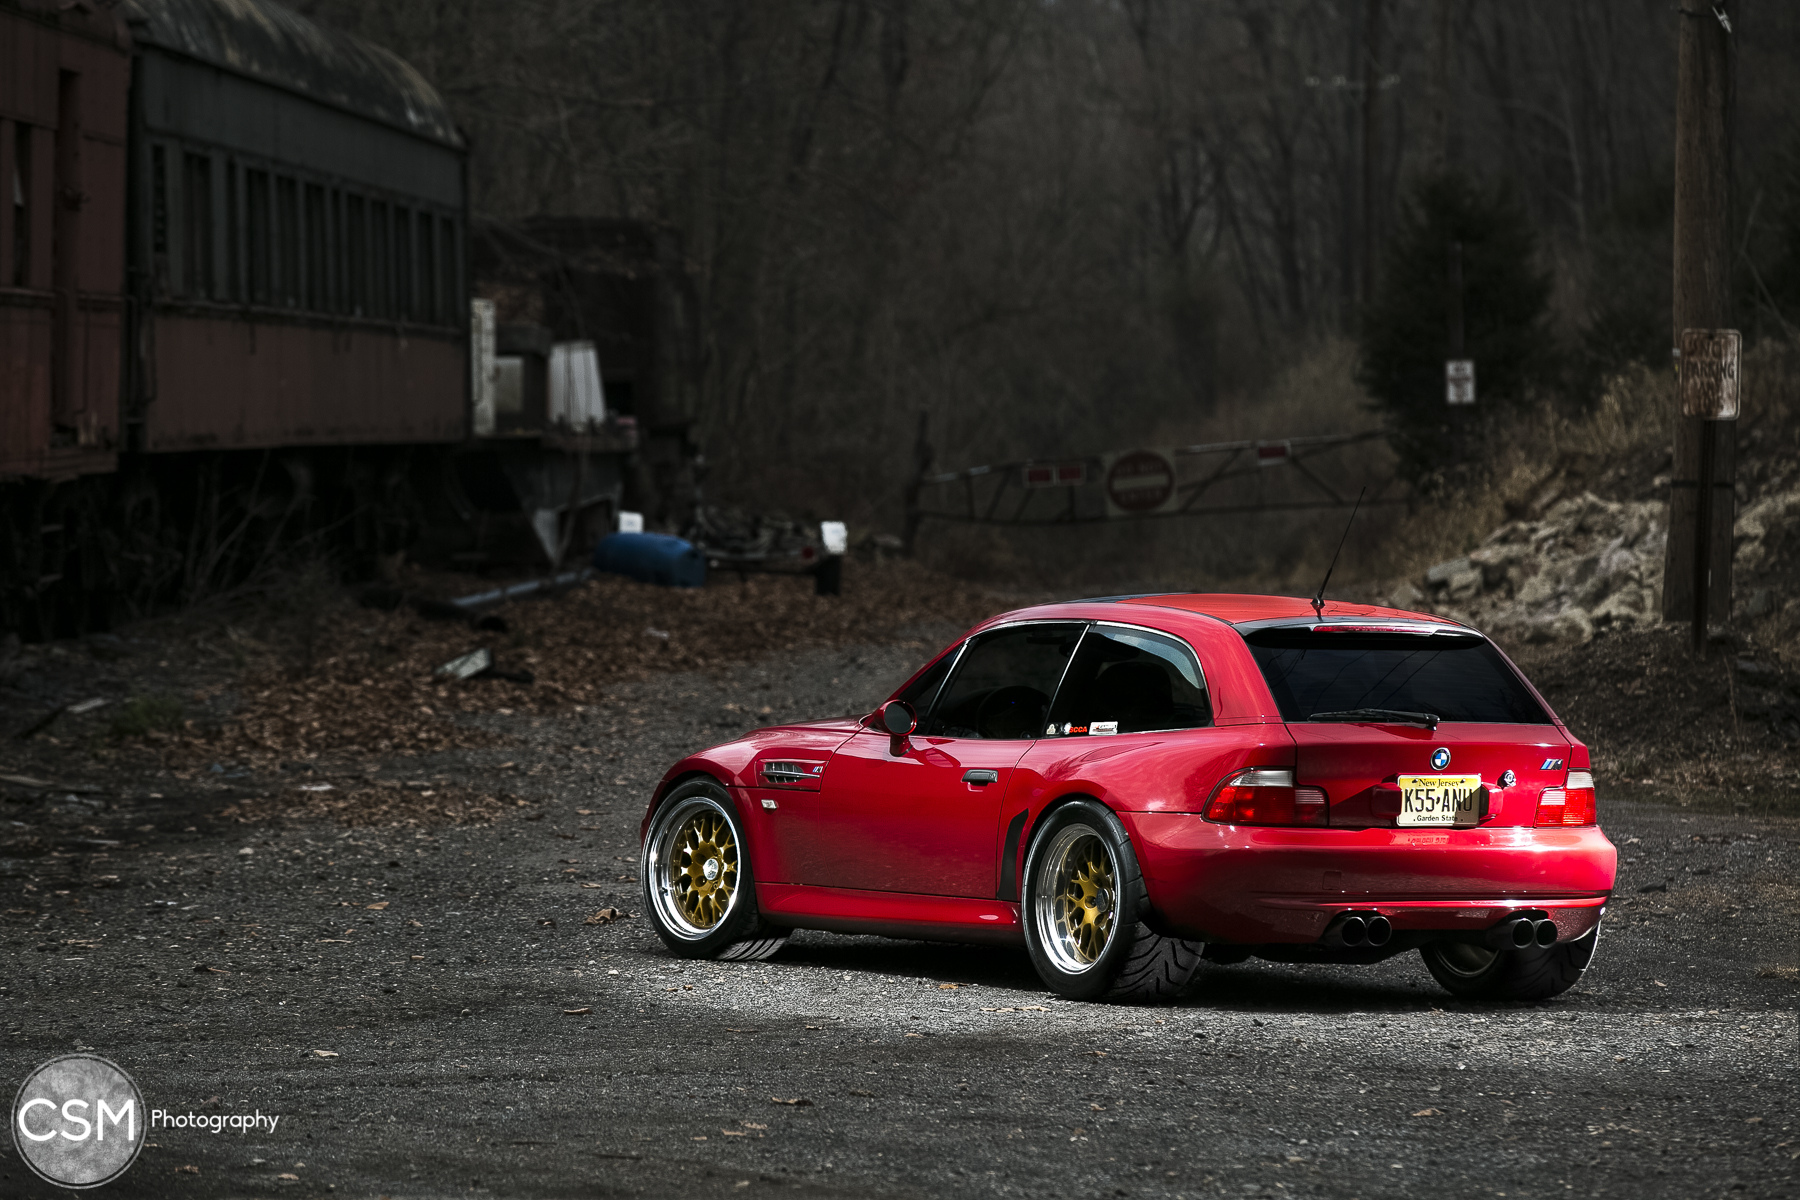 550whp Turbo Z3 M Coupe Photoshoot